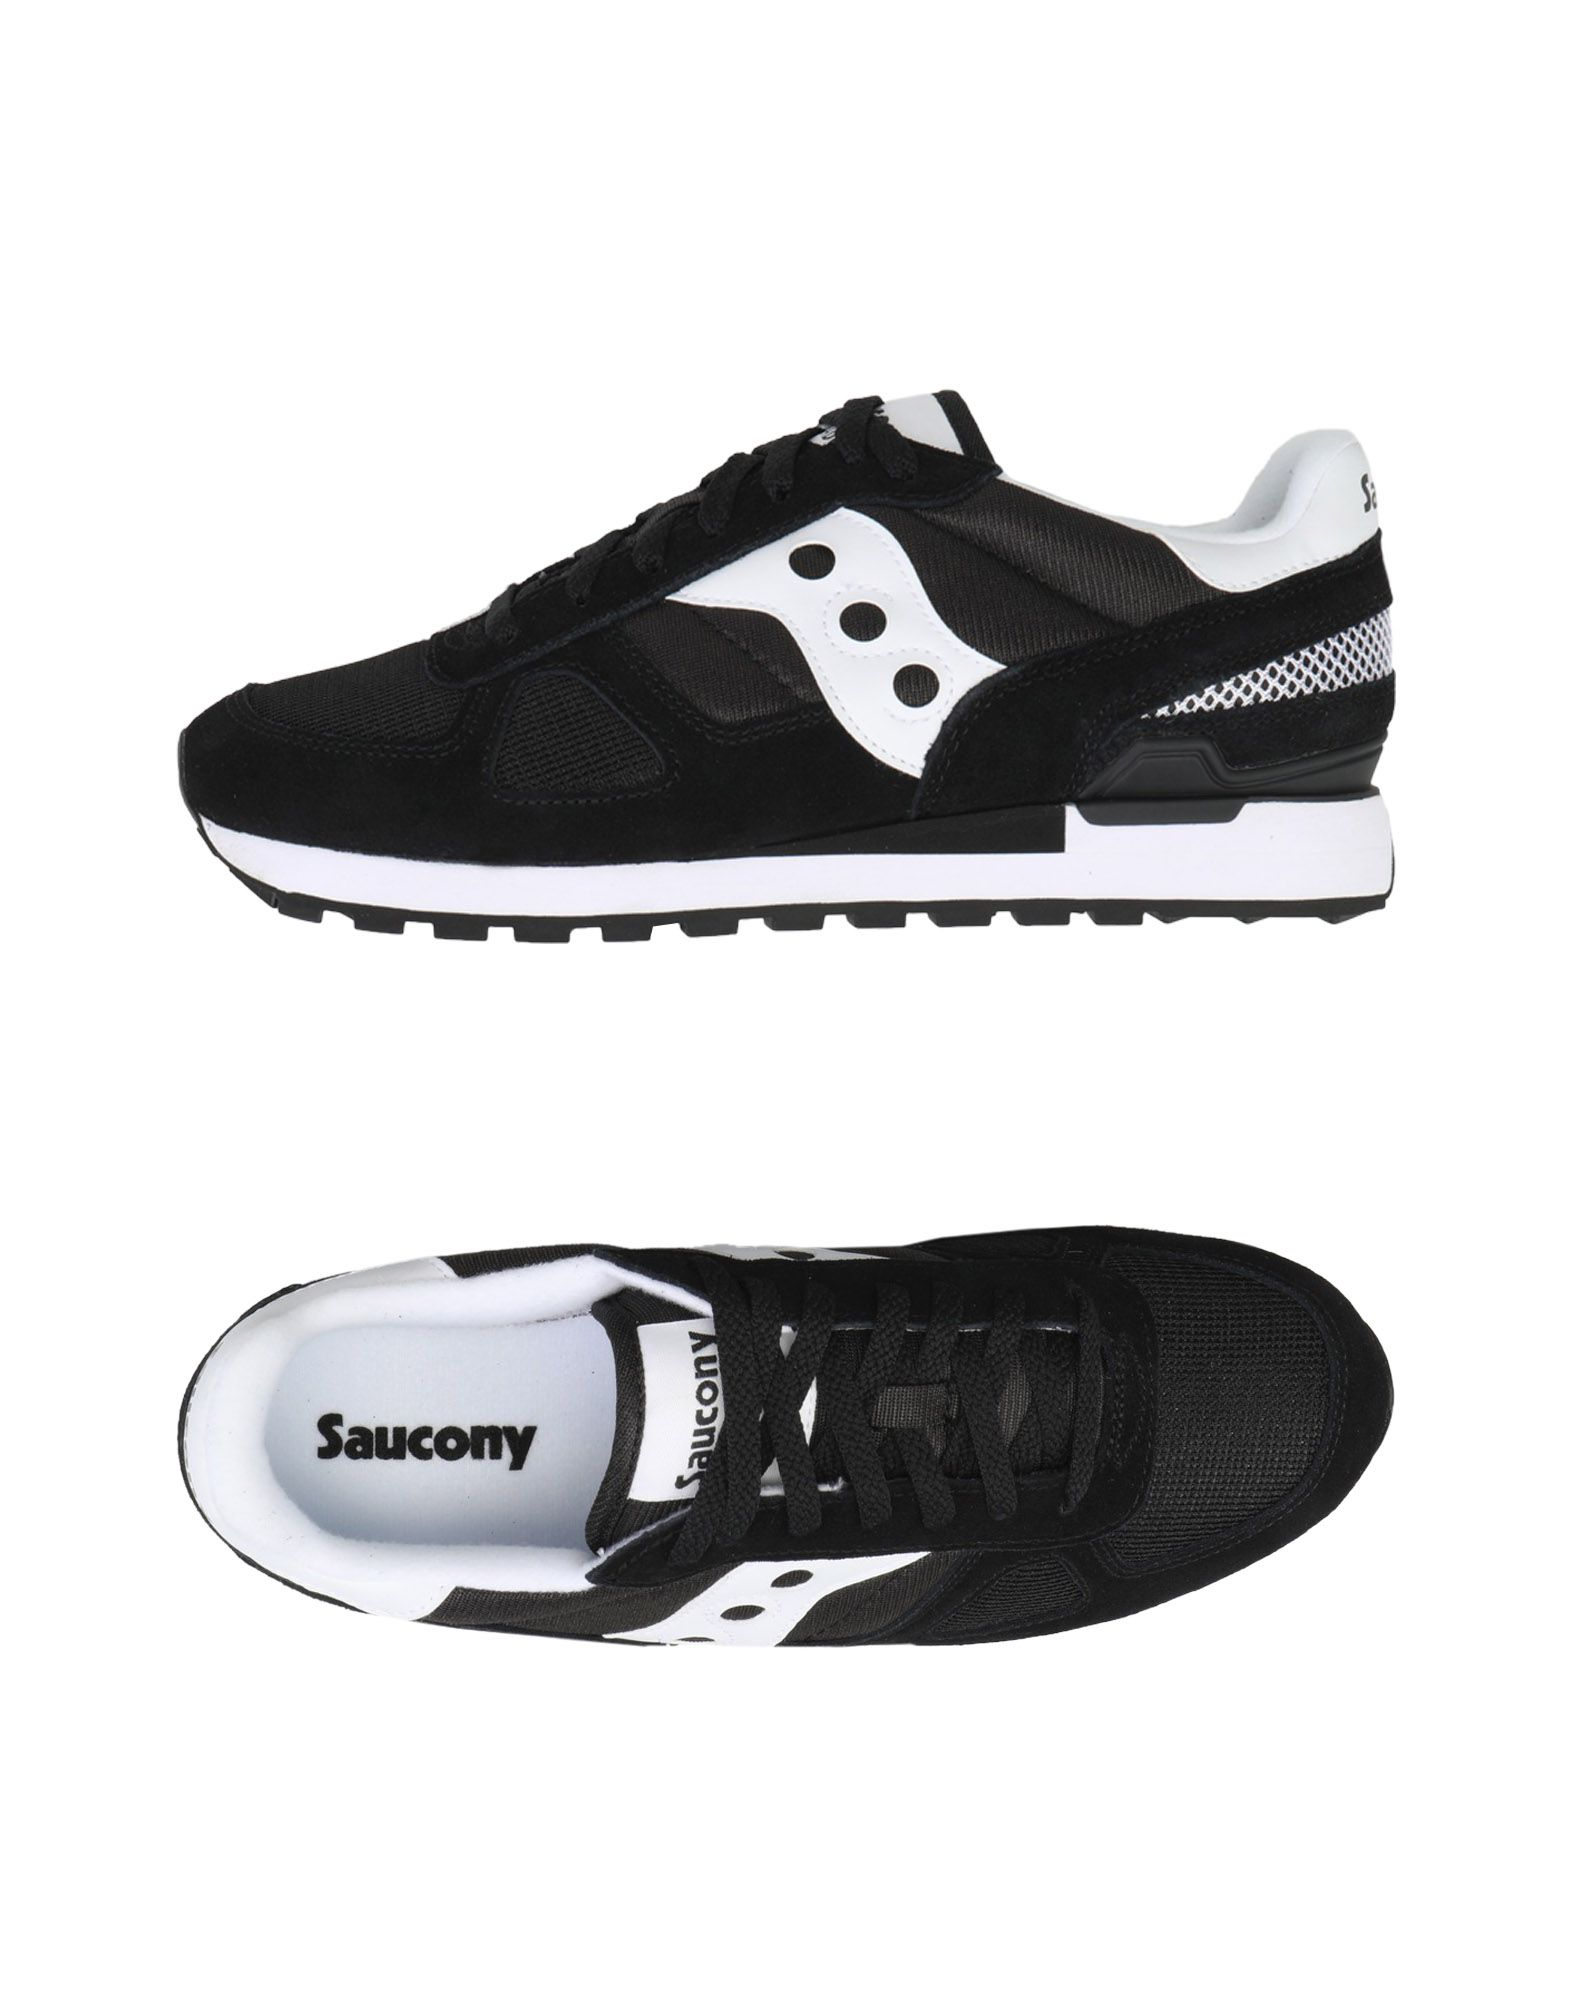 Saucony Shadow Original - Sneakers - on Men Saucony Sneakers online on -  United Kingdom - 11340877DK ae41fd